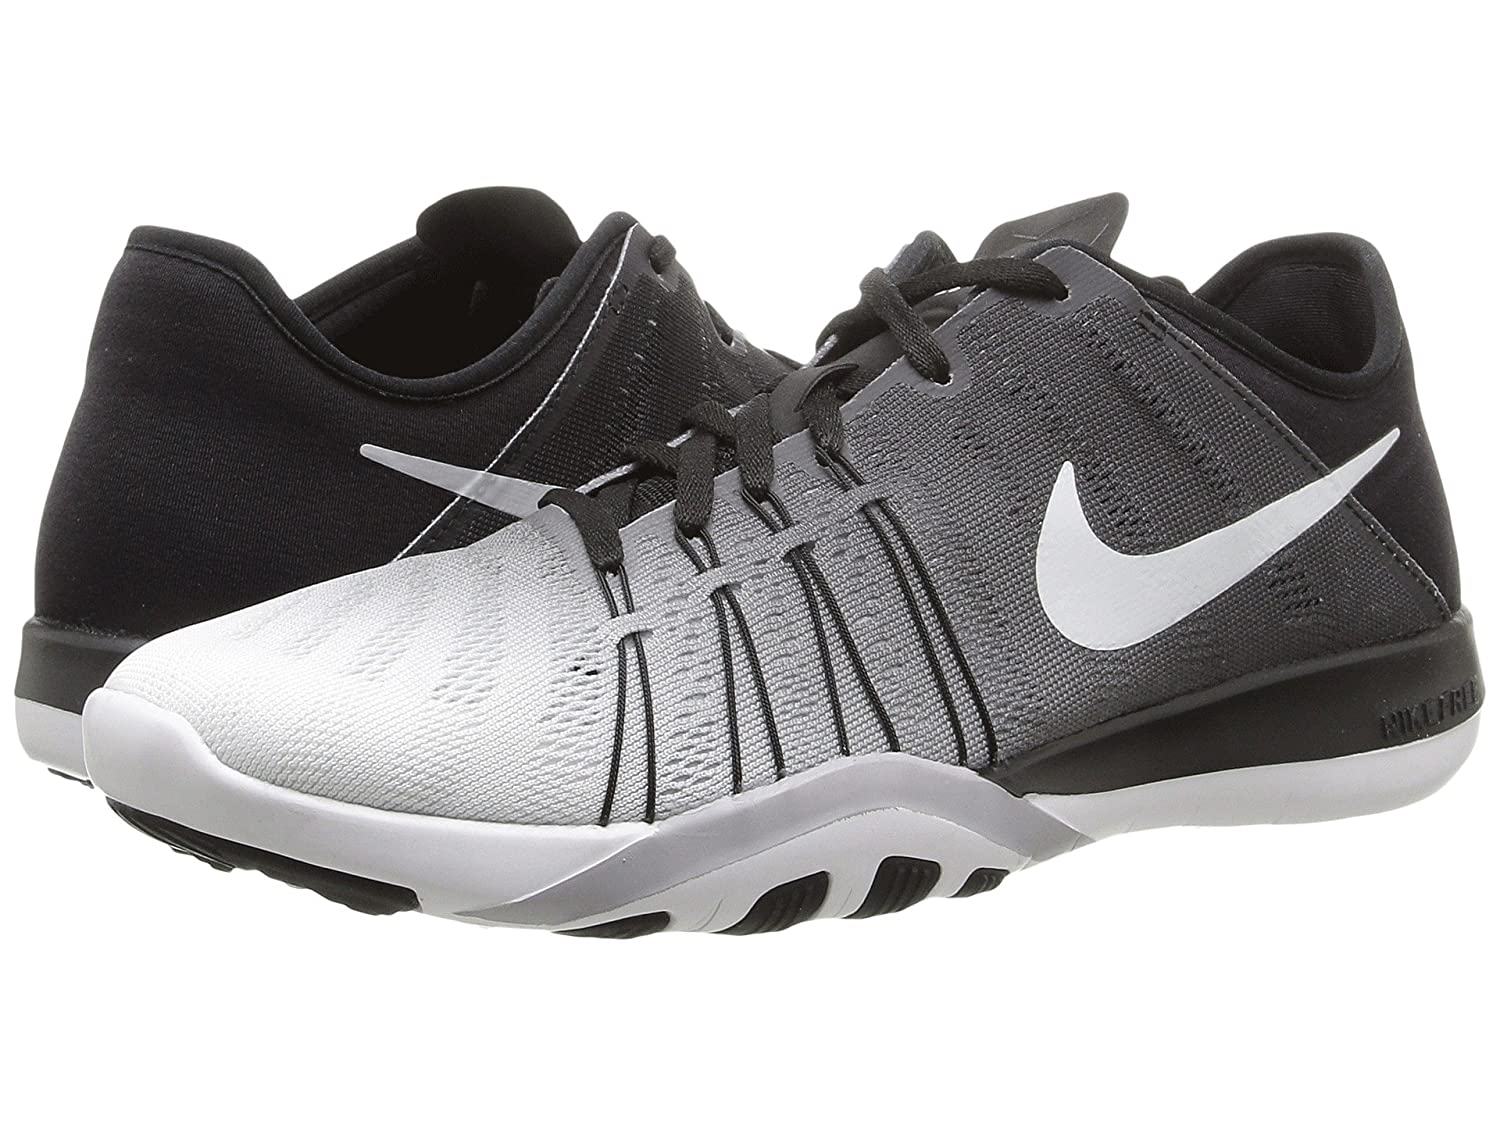 Womens Nike Free TR 6 Training Shoes B01DL10HIE 10 B(M) US|Black/Summit White/Wolf Grey